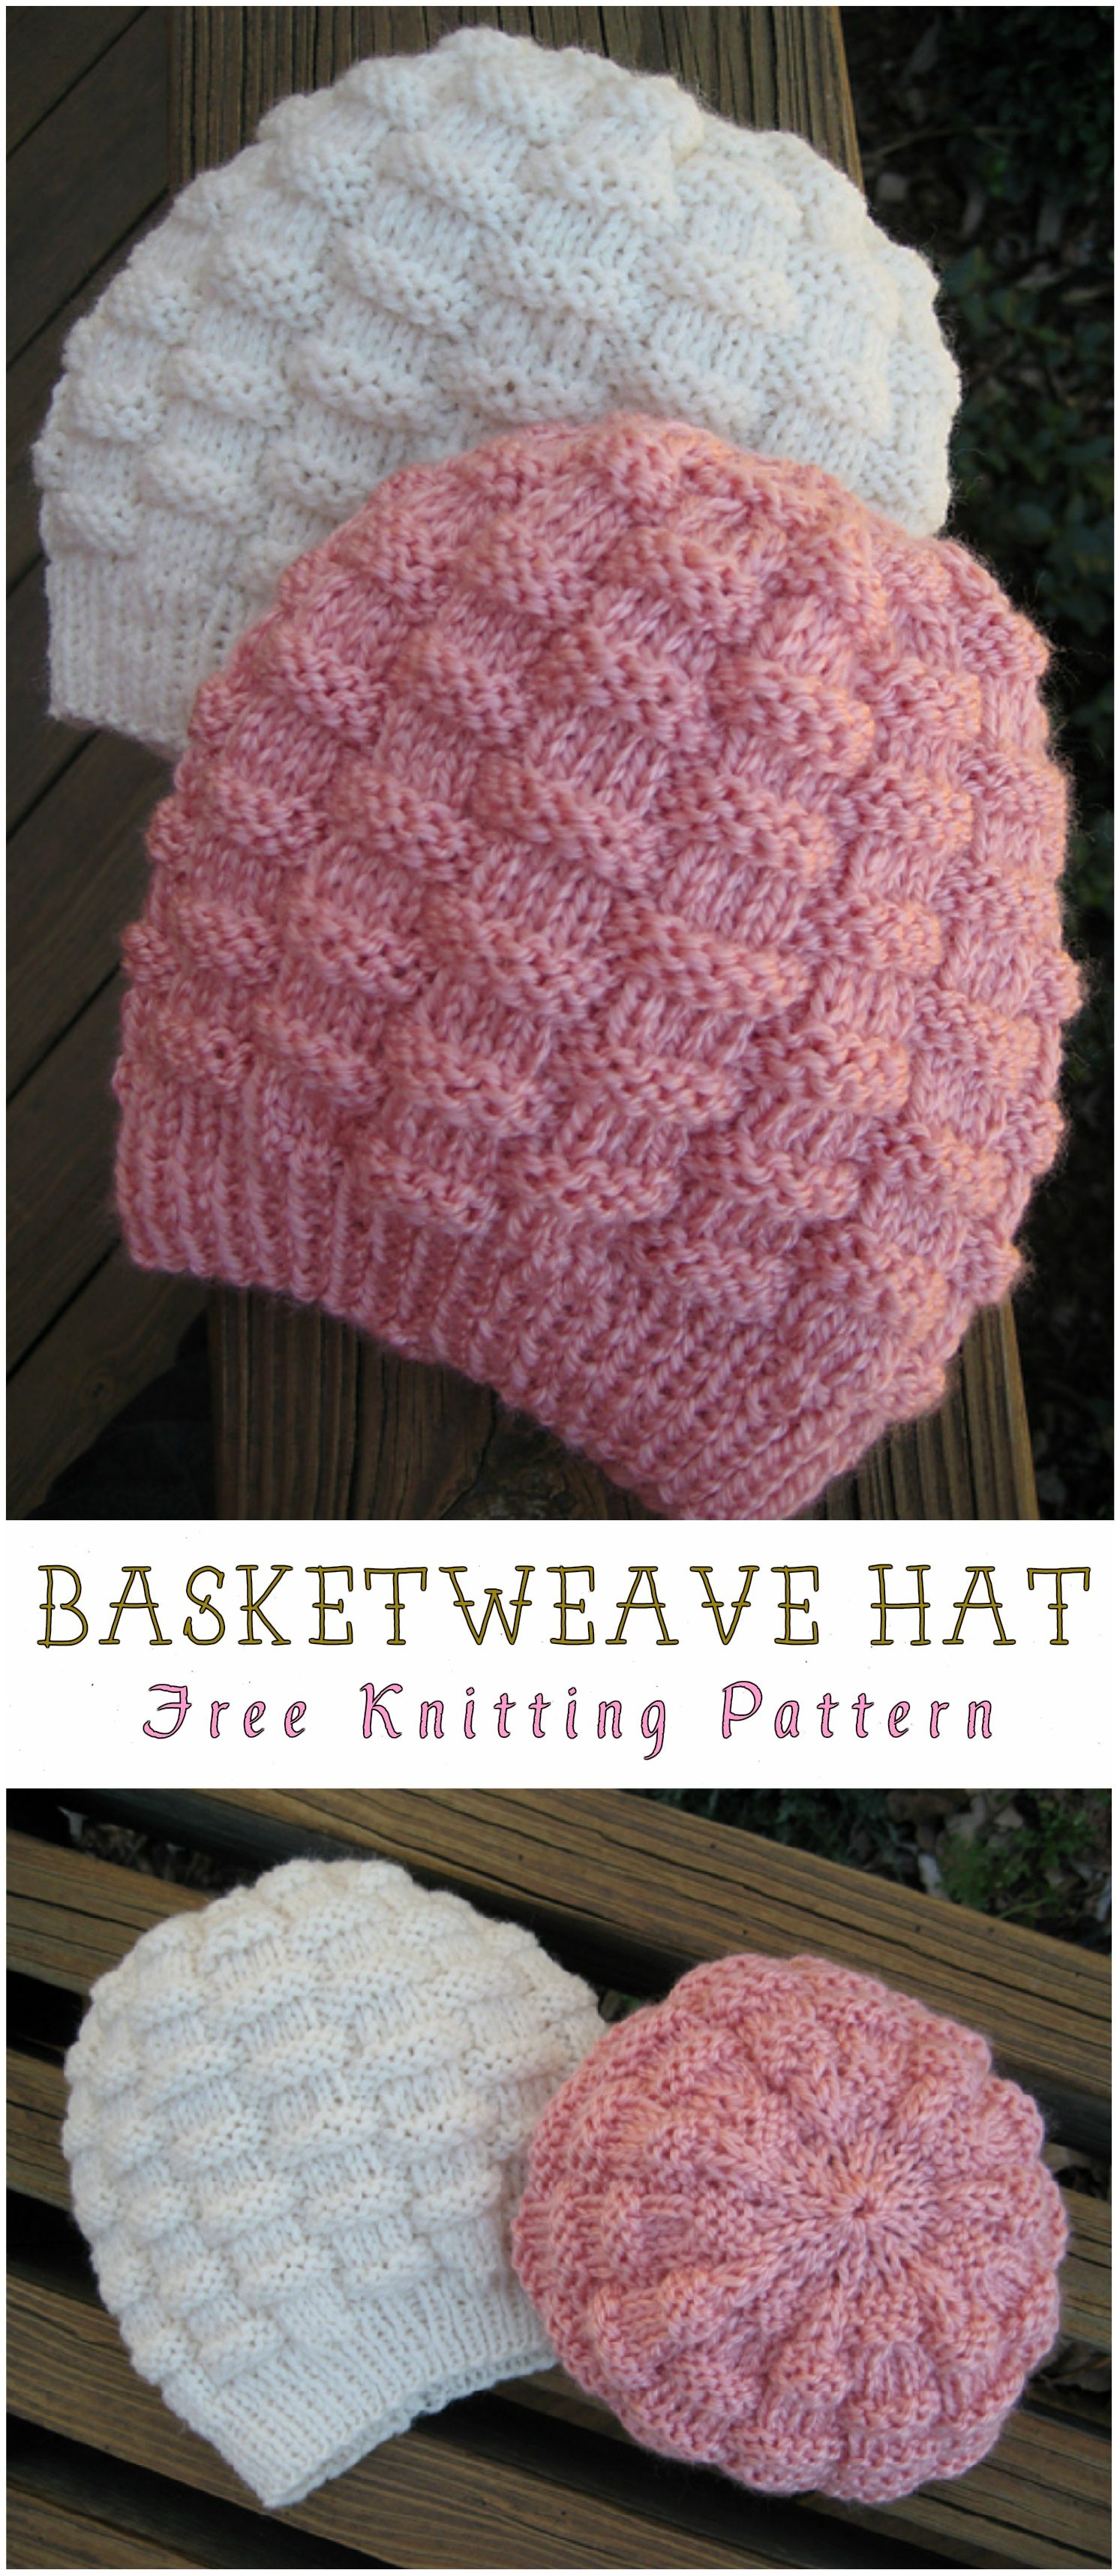 Basketweave hat free knitting pattern knitting patterns basketweave hat free knitting pattern bankloansurffo Choice Image